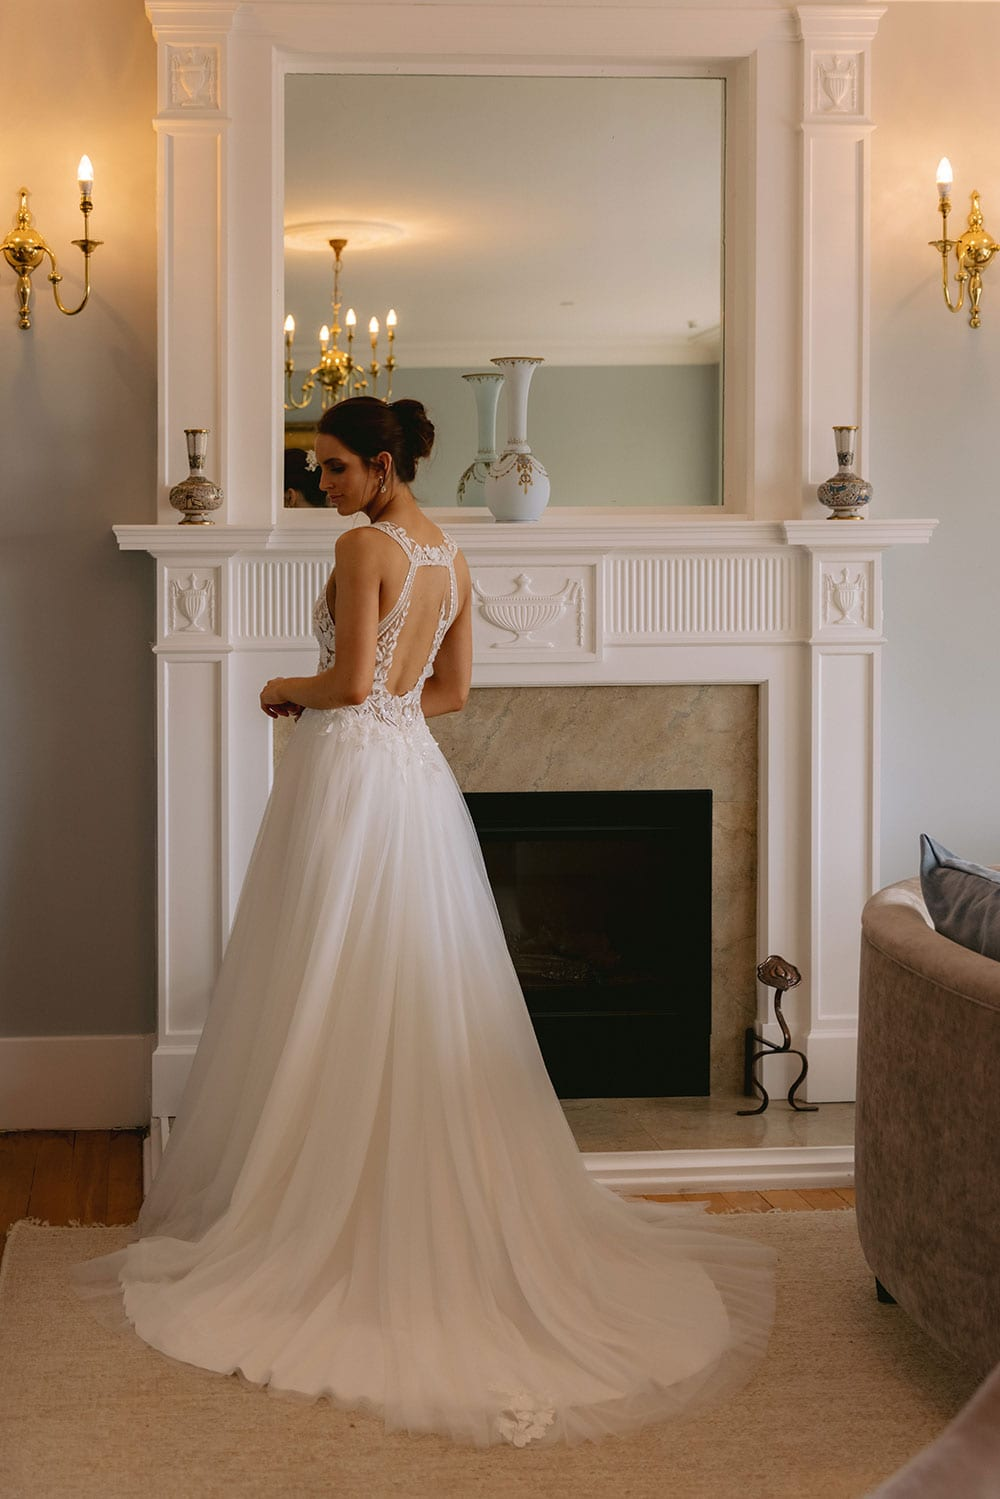 Tia Wedding gown from Vinka Design - This dreamy sculpted wedding dress has a deep V-shaped illusion neckline with beaded floral lace and an open back. The skirt has layers of soft tulle that glide with movement. Model wearing gown showing full length inside warmly lit heritage room.